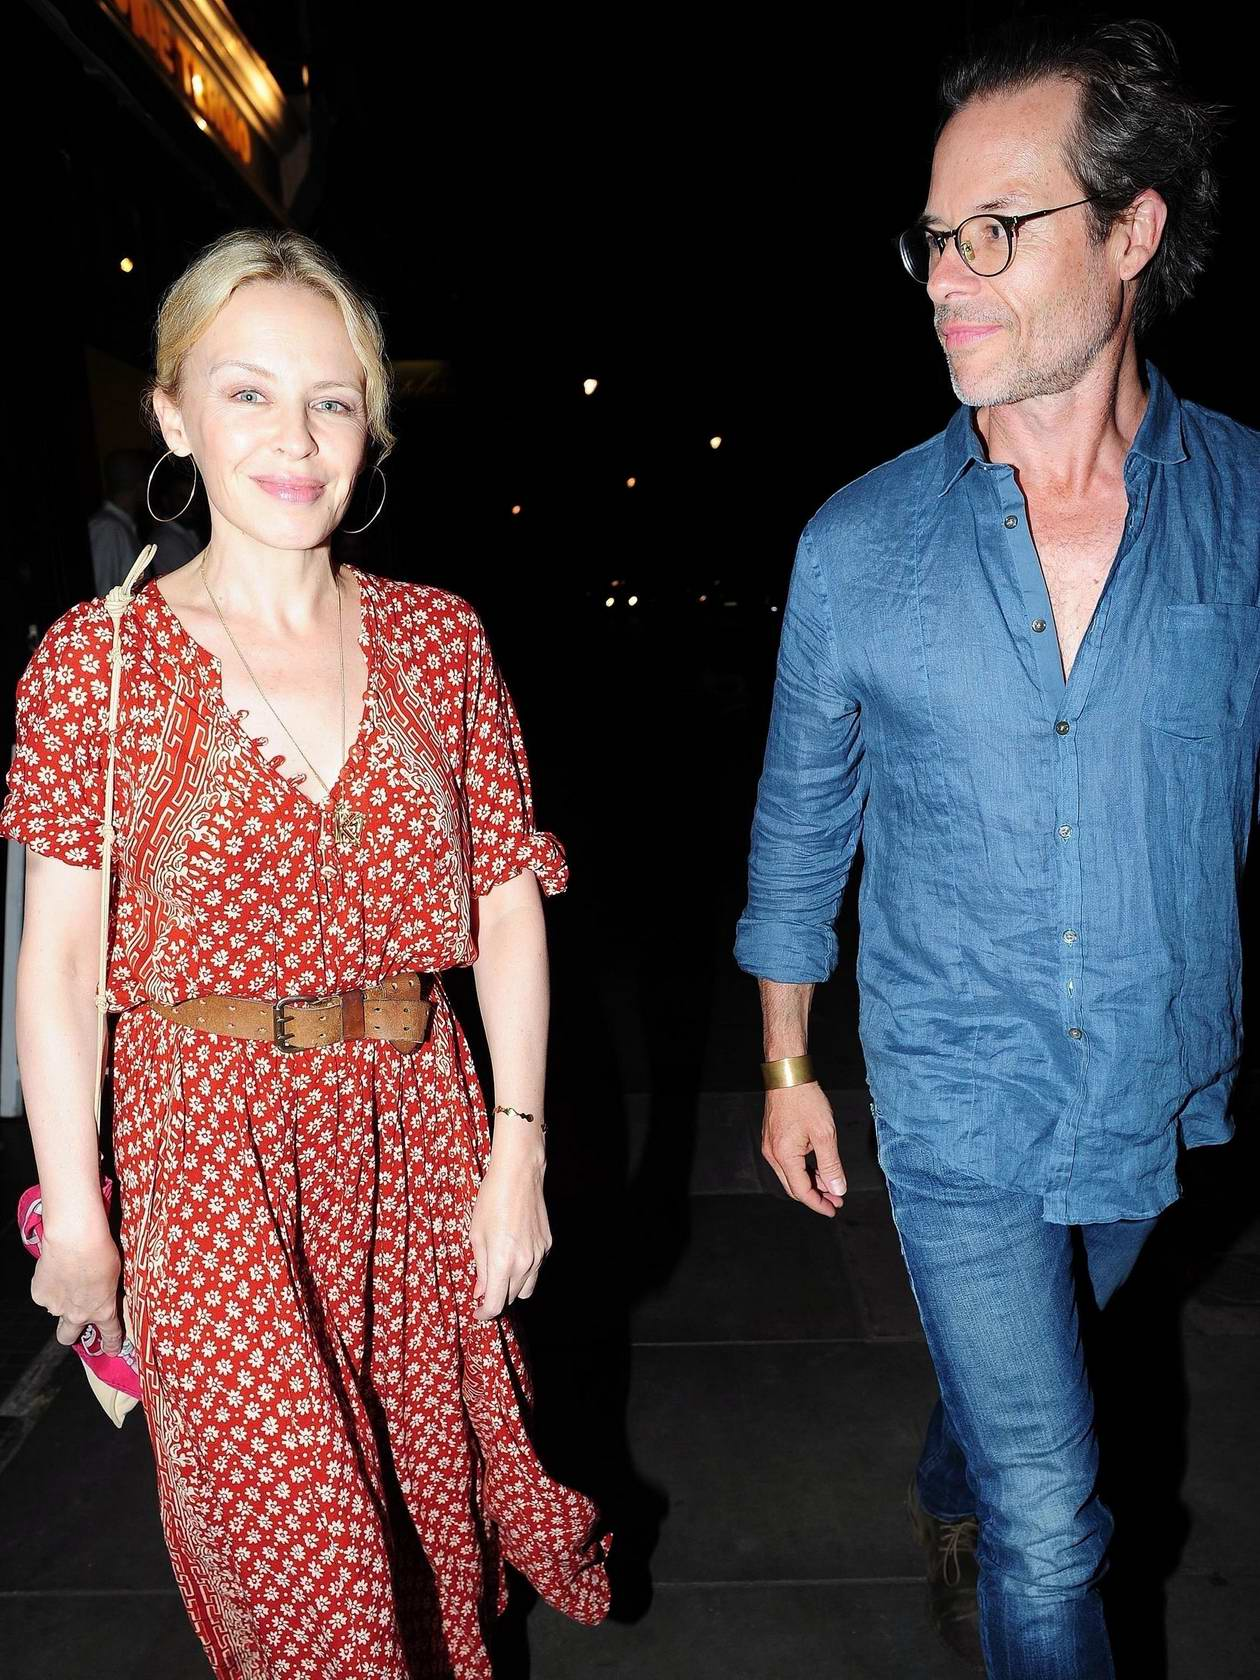 Kylie Minogue with Guy Pearce in a Spanish Restaurant in London